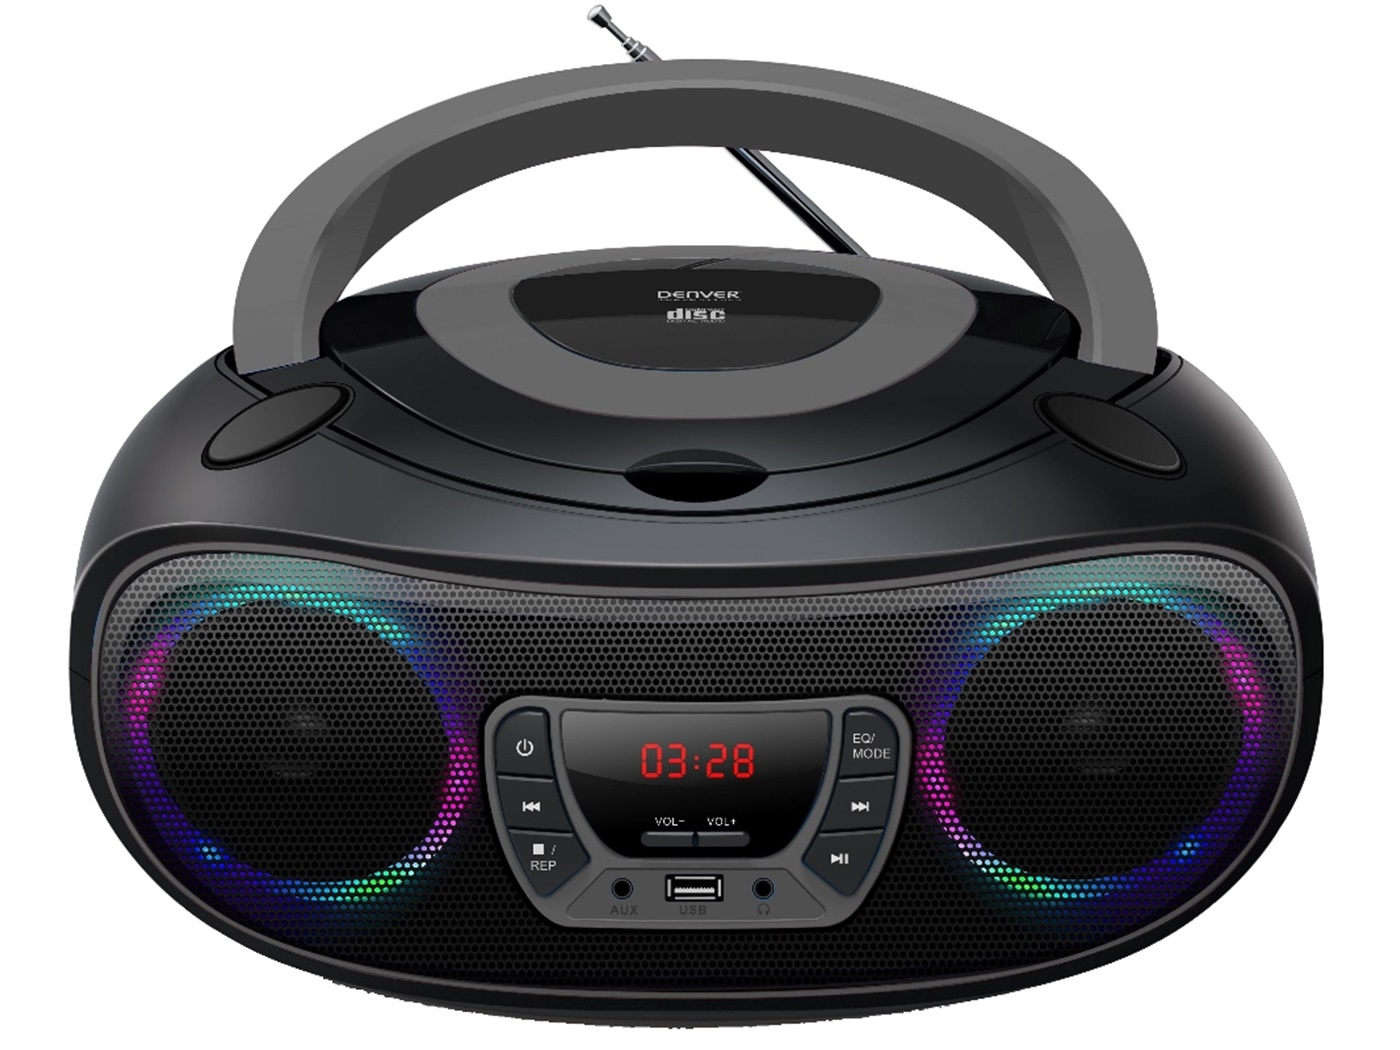 DENVER BOOMBOX RADIO/CD/USB/BT TCL-212BT